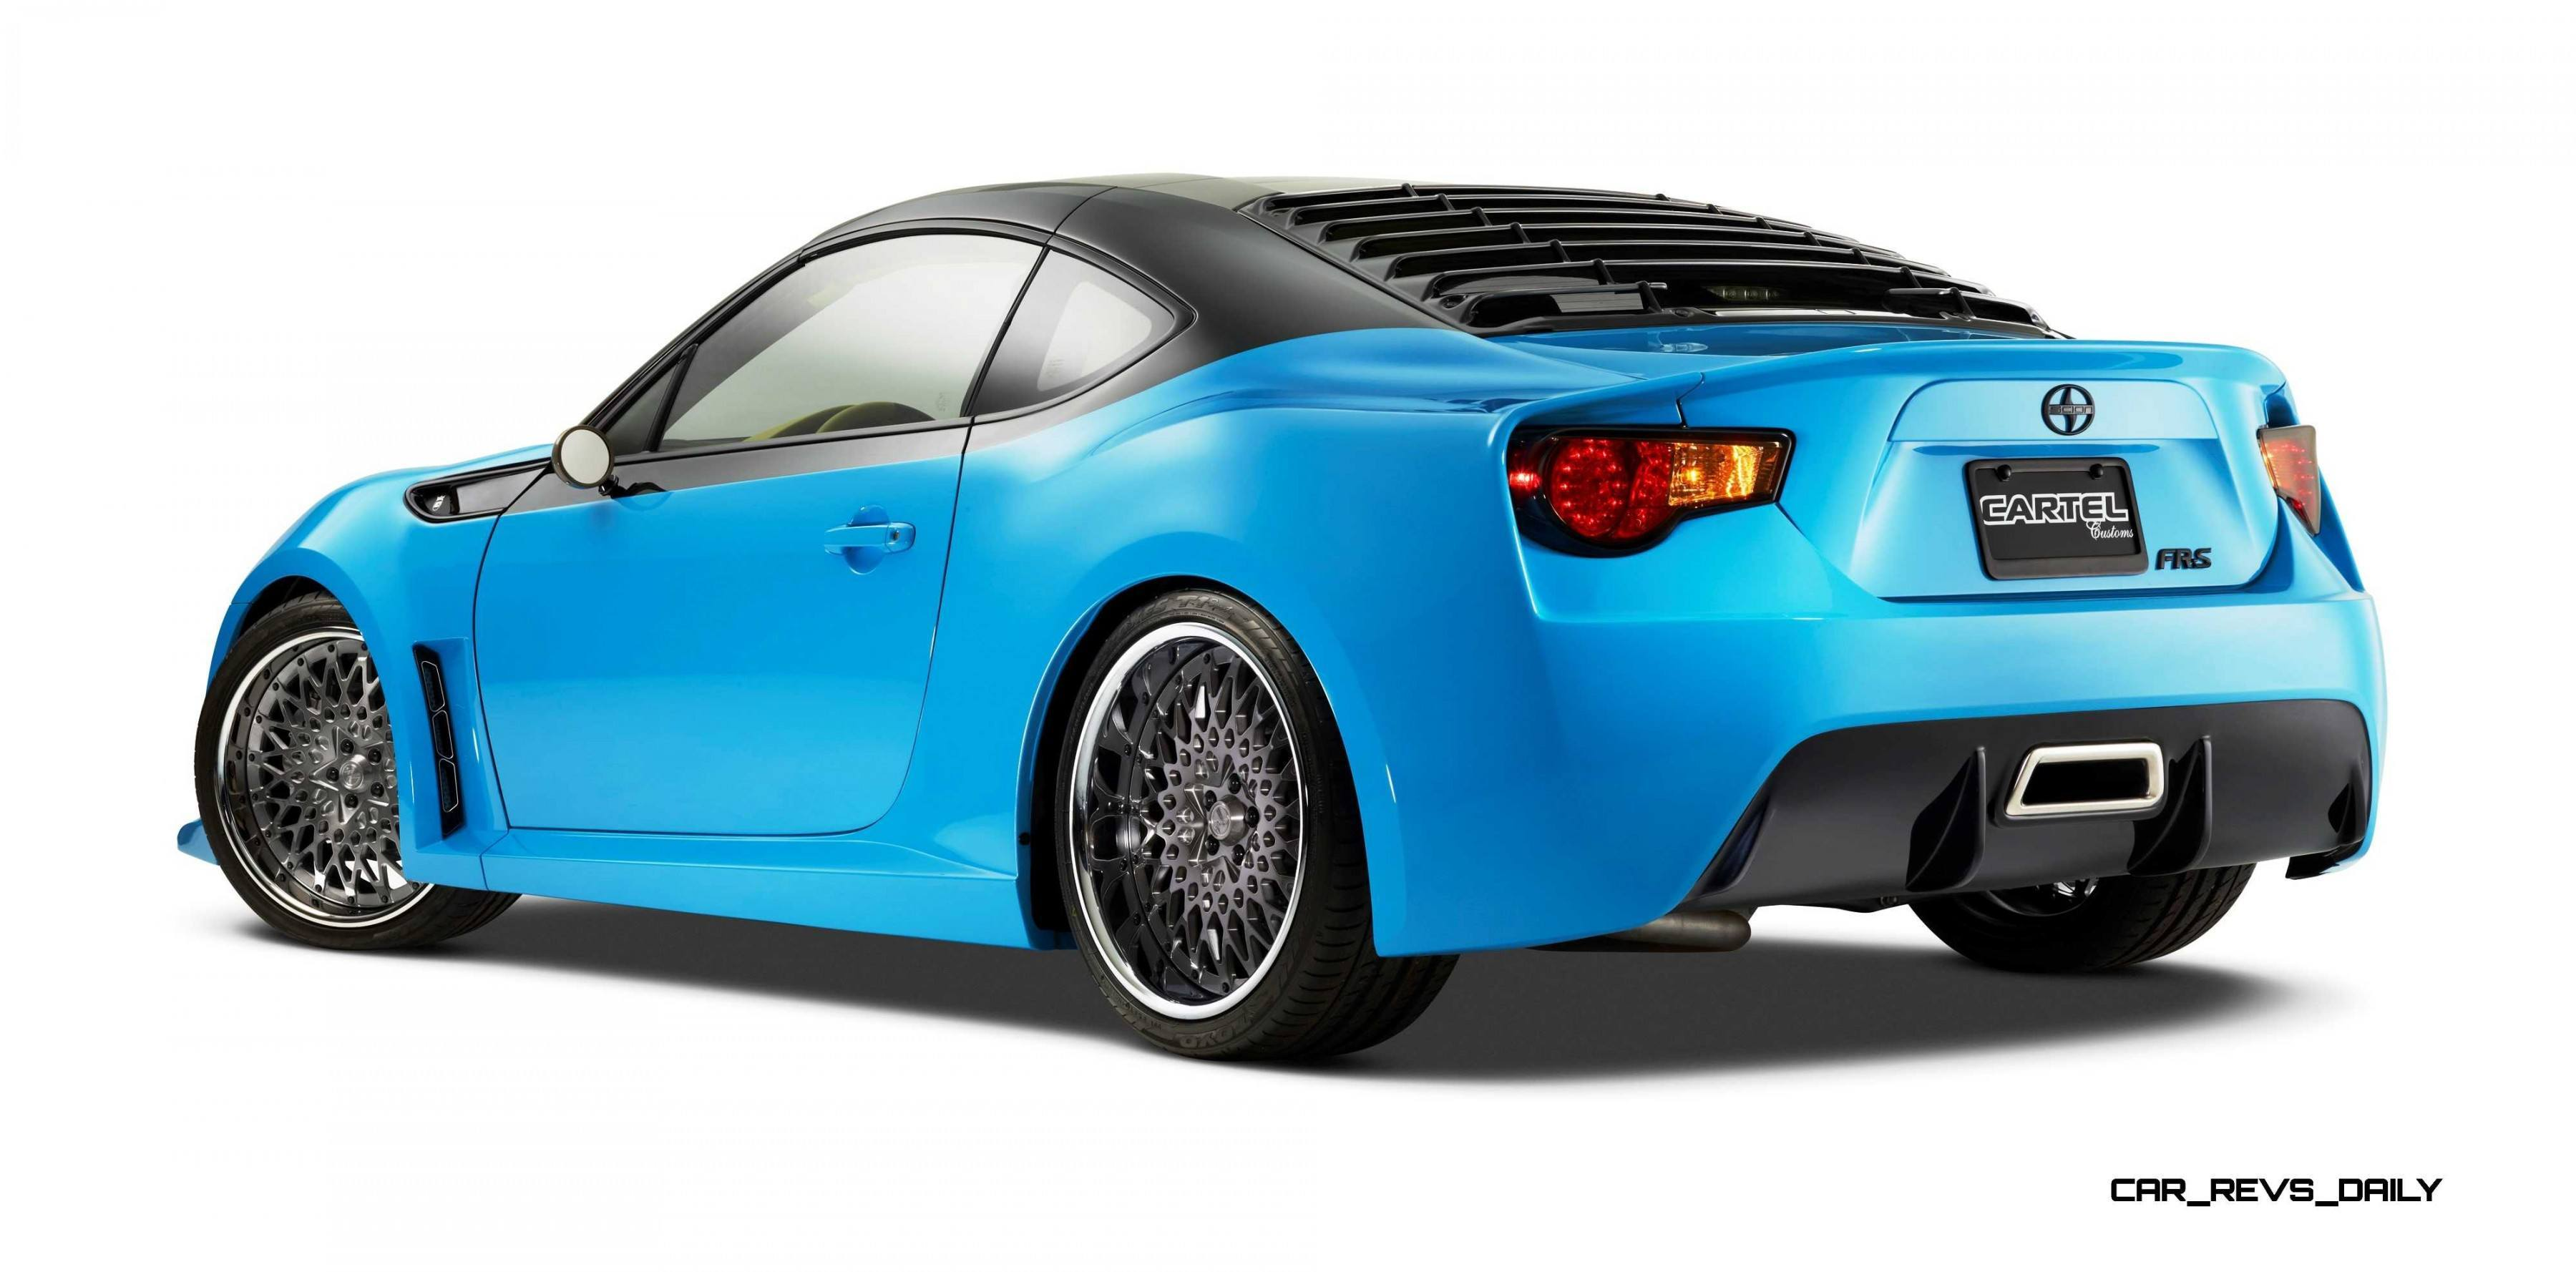 SCION Thrills With Concept FR S TARGA TURBO xB Camper